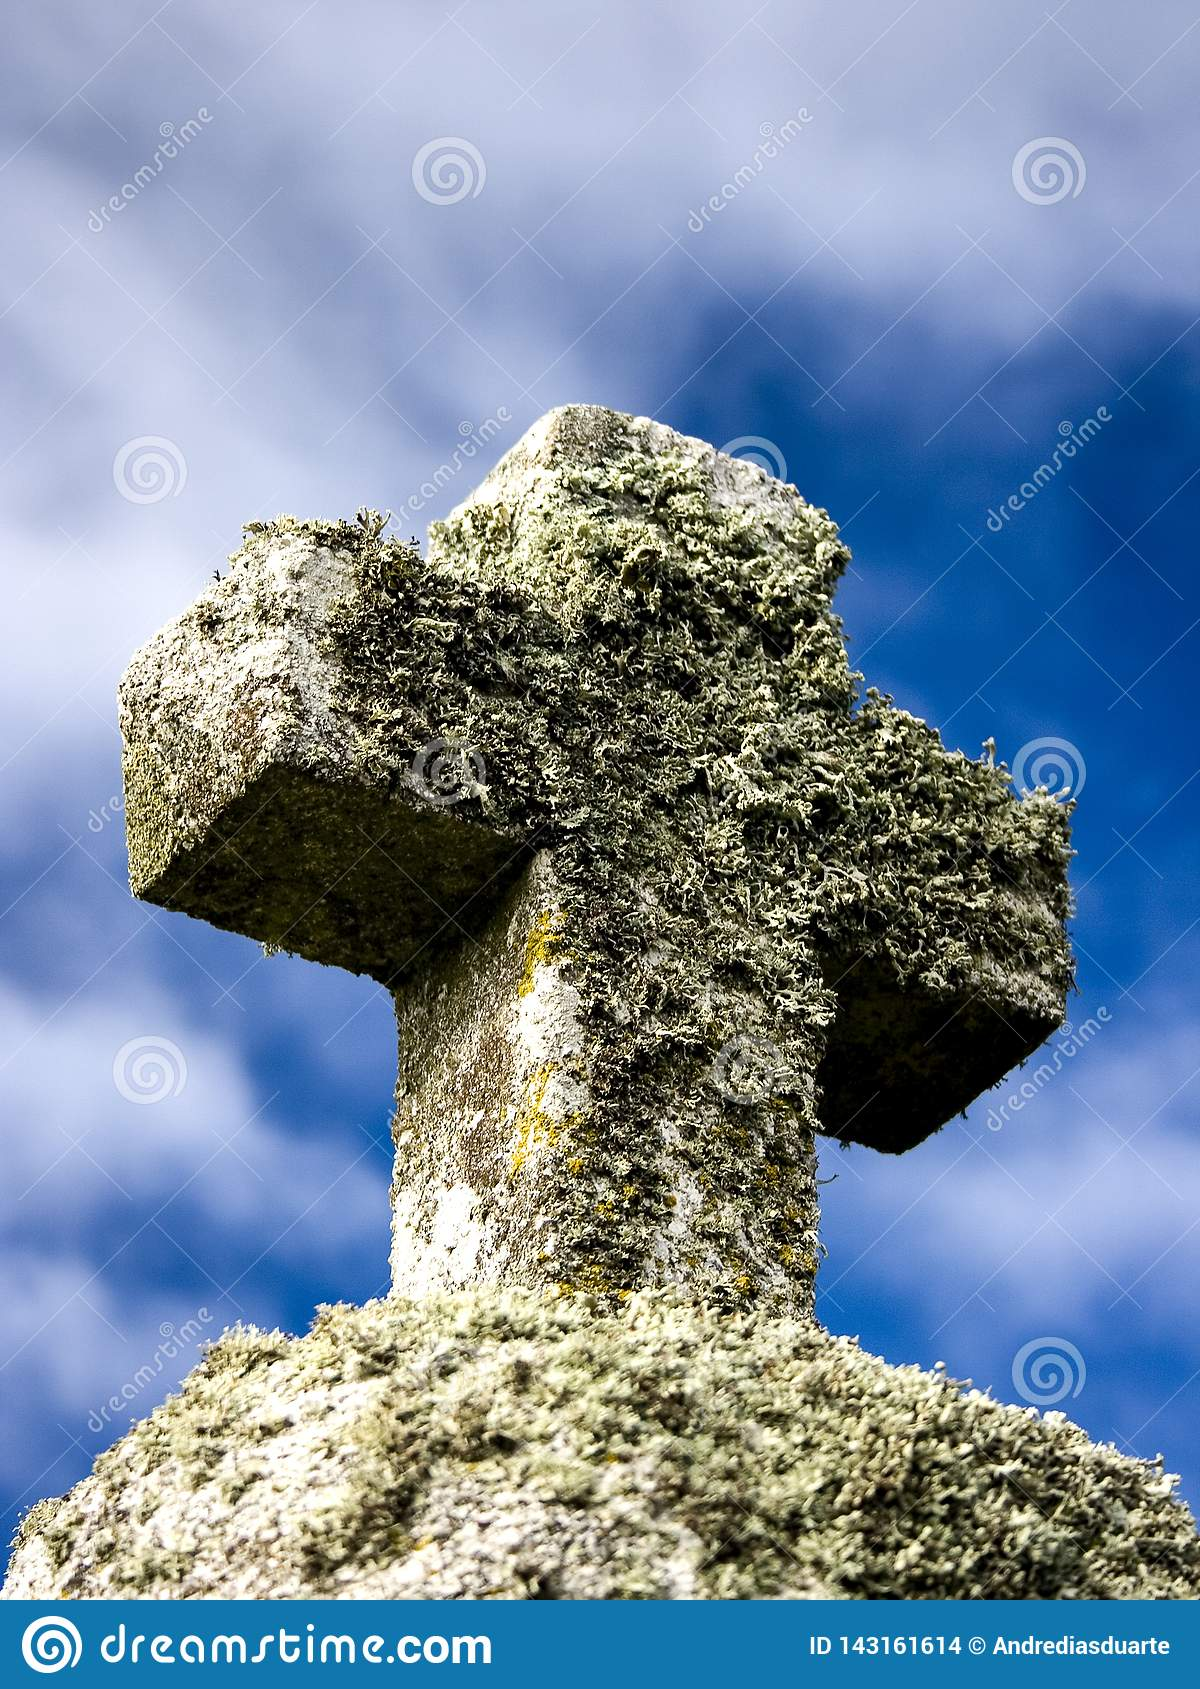 Stone cross with plants with sky as background